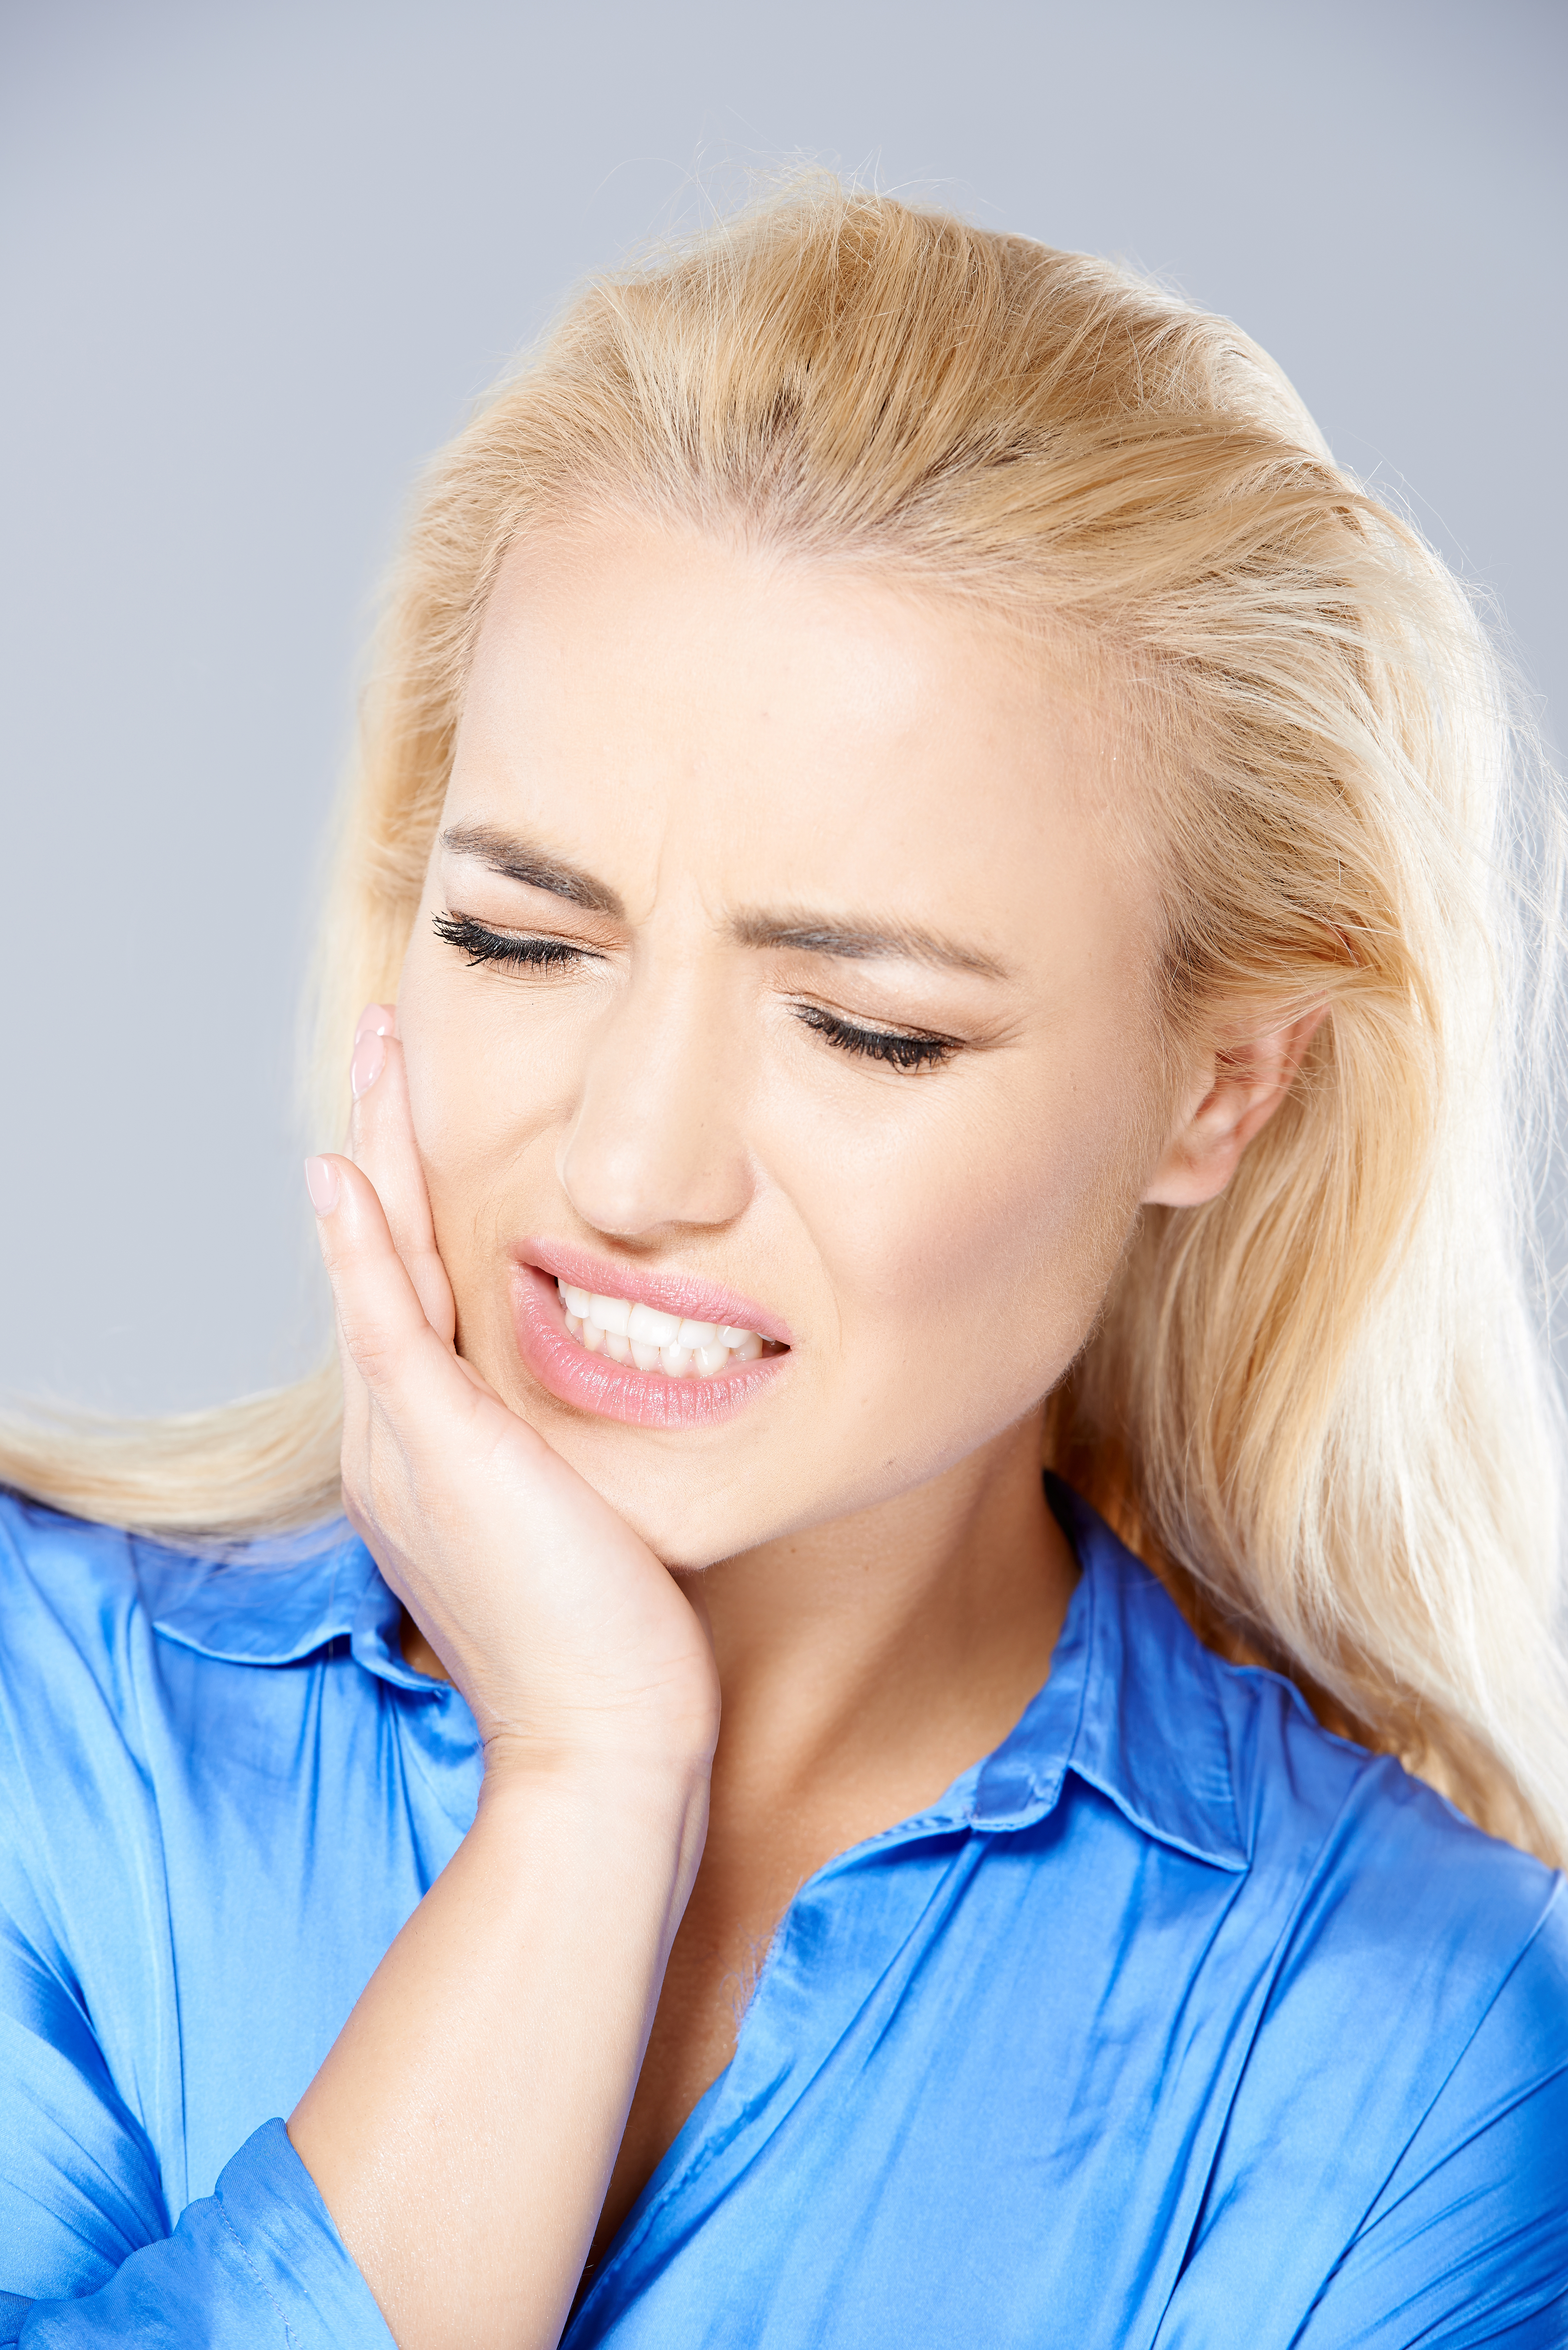 blond woman suffering from teeth grinding or bruxism